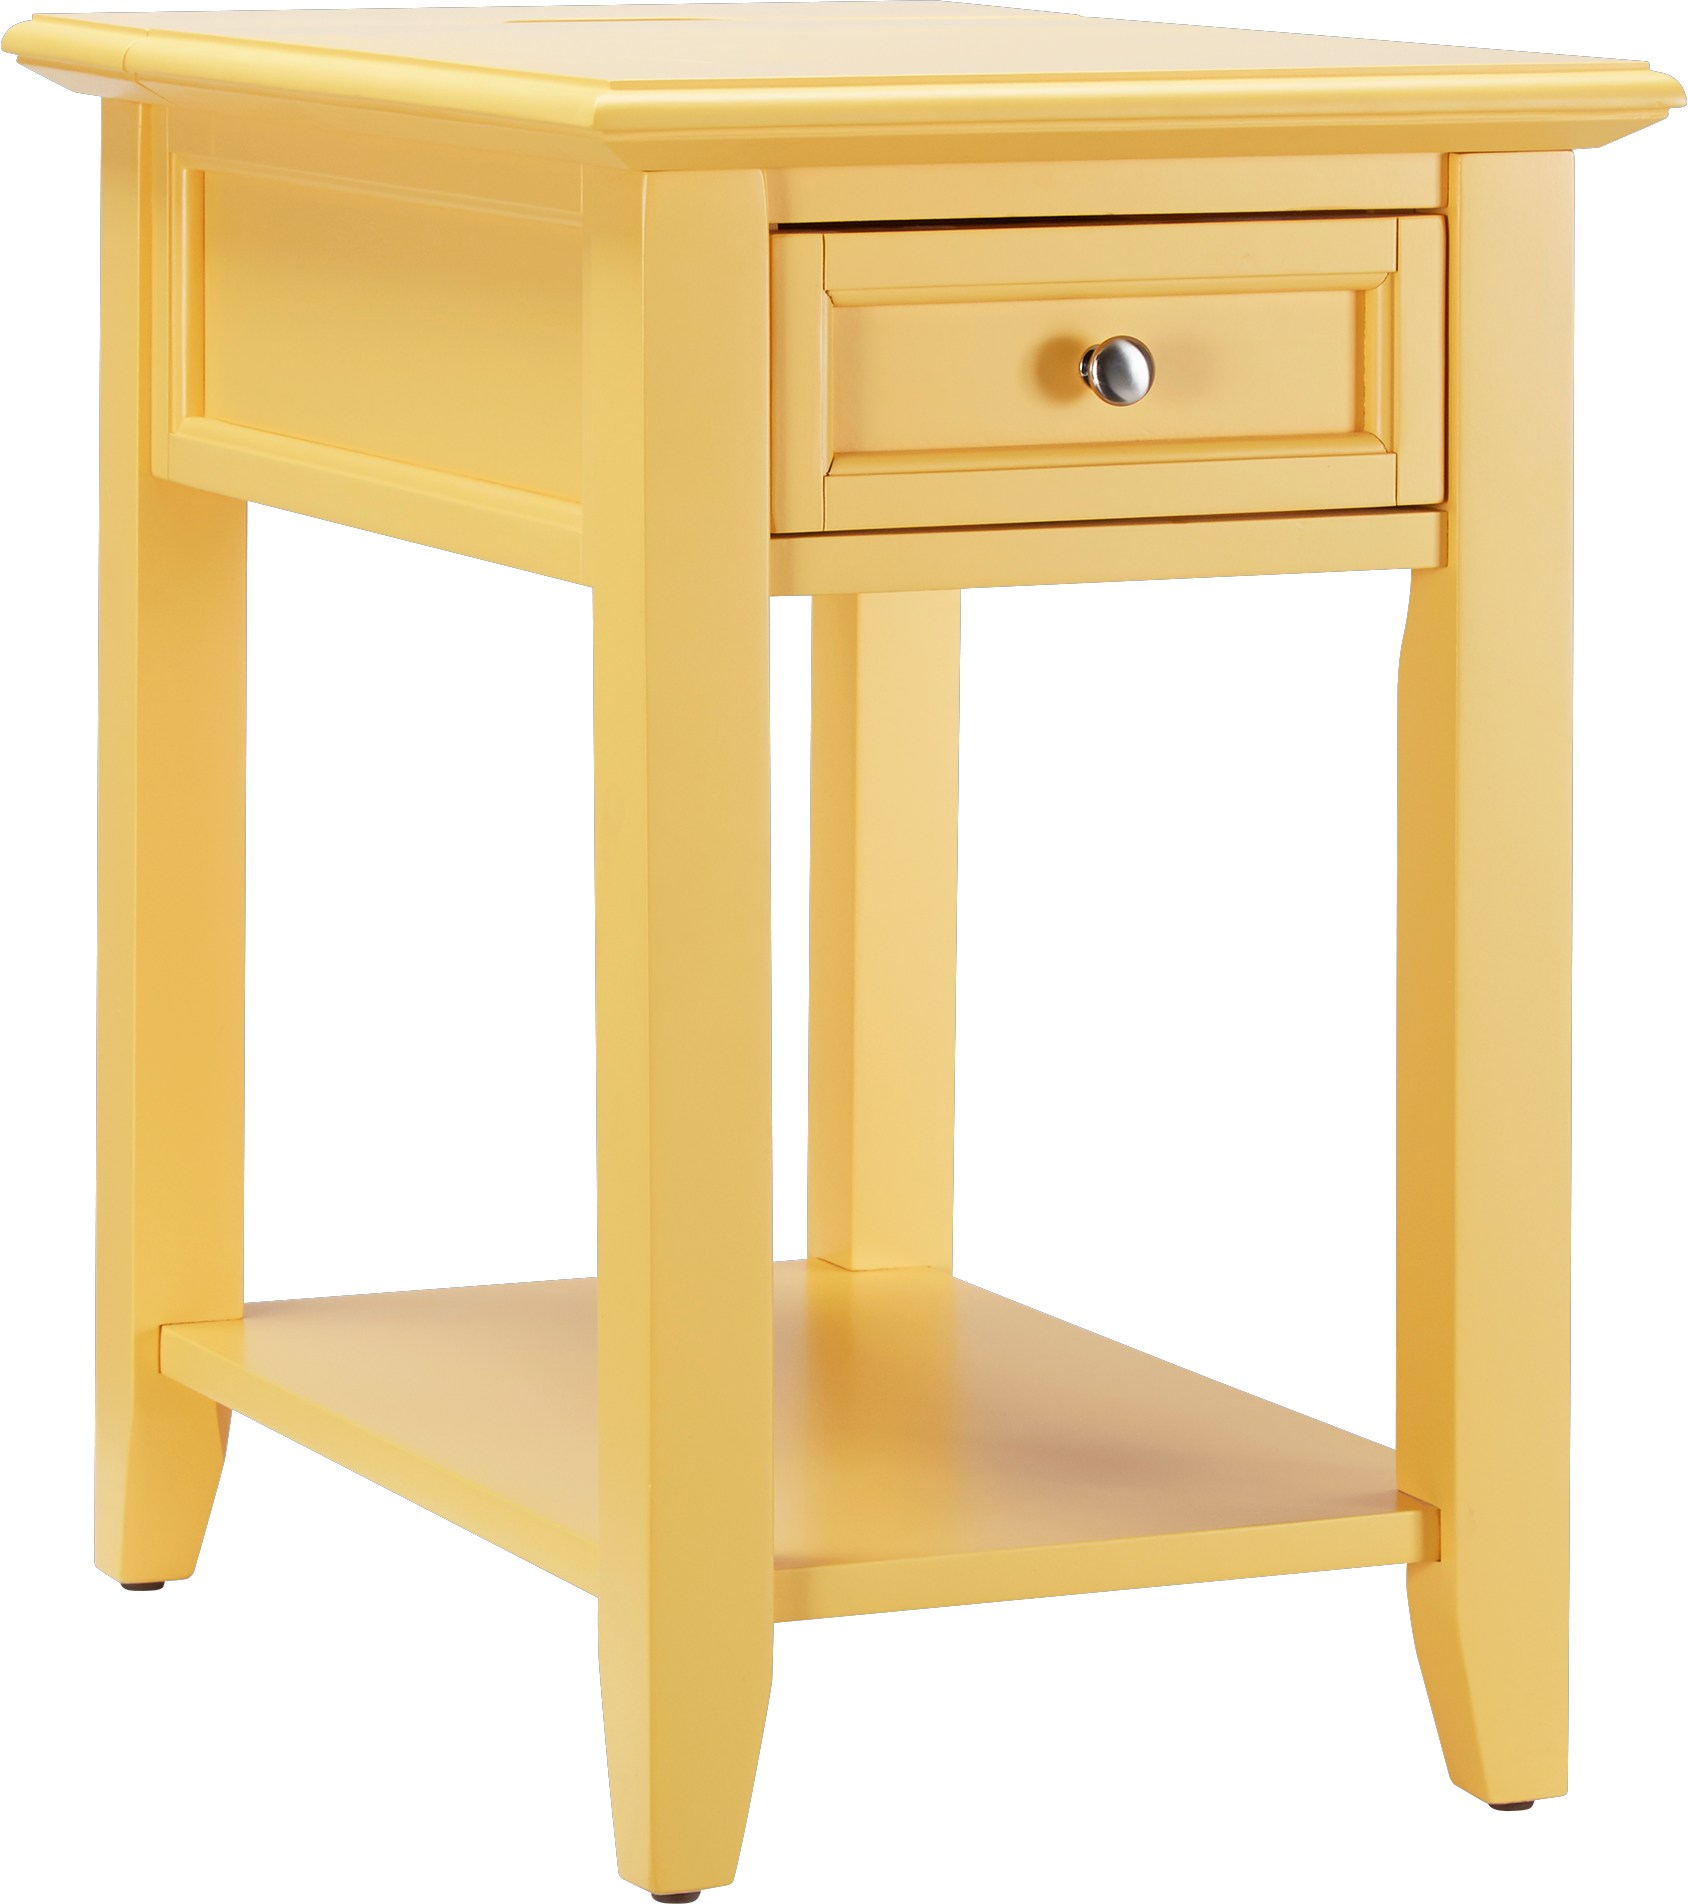 leda yellow accent table tables colors glass chest drawers patio umbrellas gas grills christmas linen marble bistro wood occasional room essentials side best dining furniture